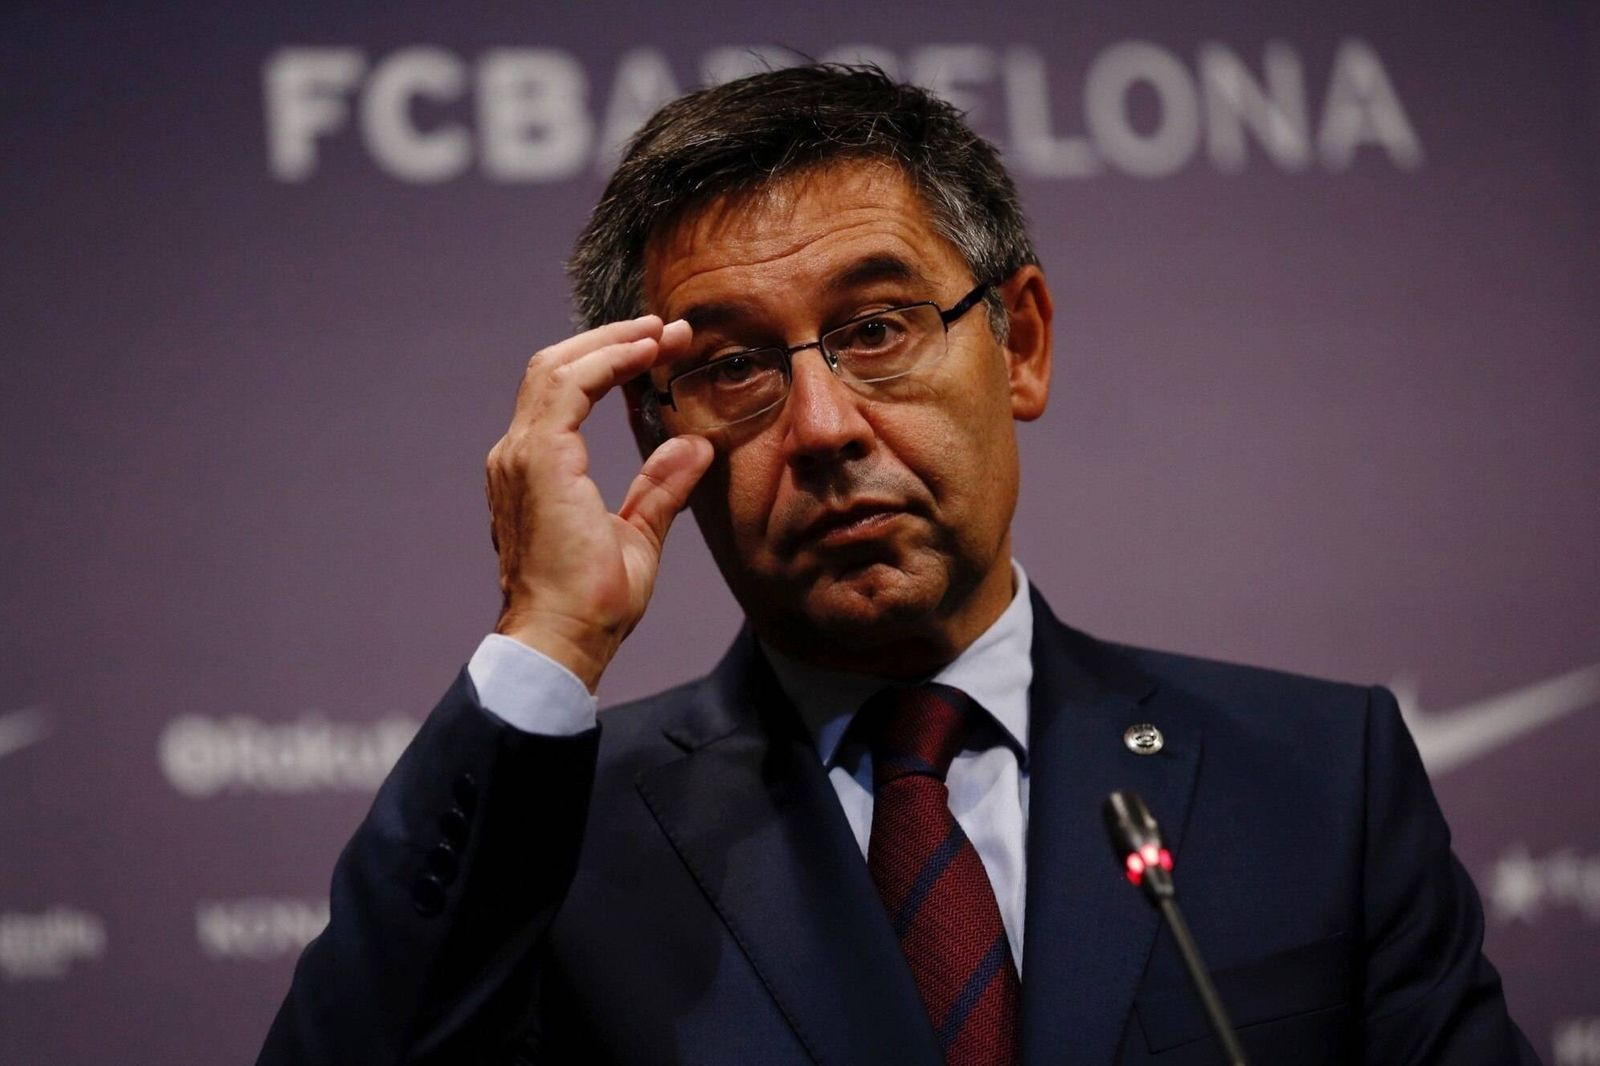 FC Barcelona Barca s President Josep Maria Bartomeu delivers a press conference PK Pressekonferenz after the extraordin